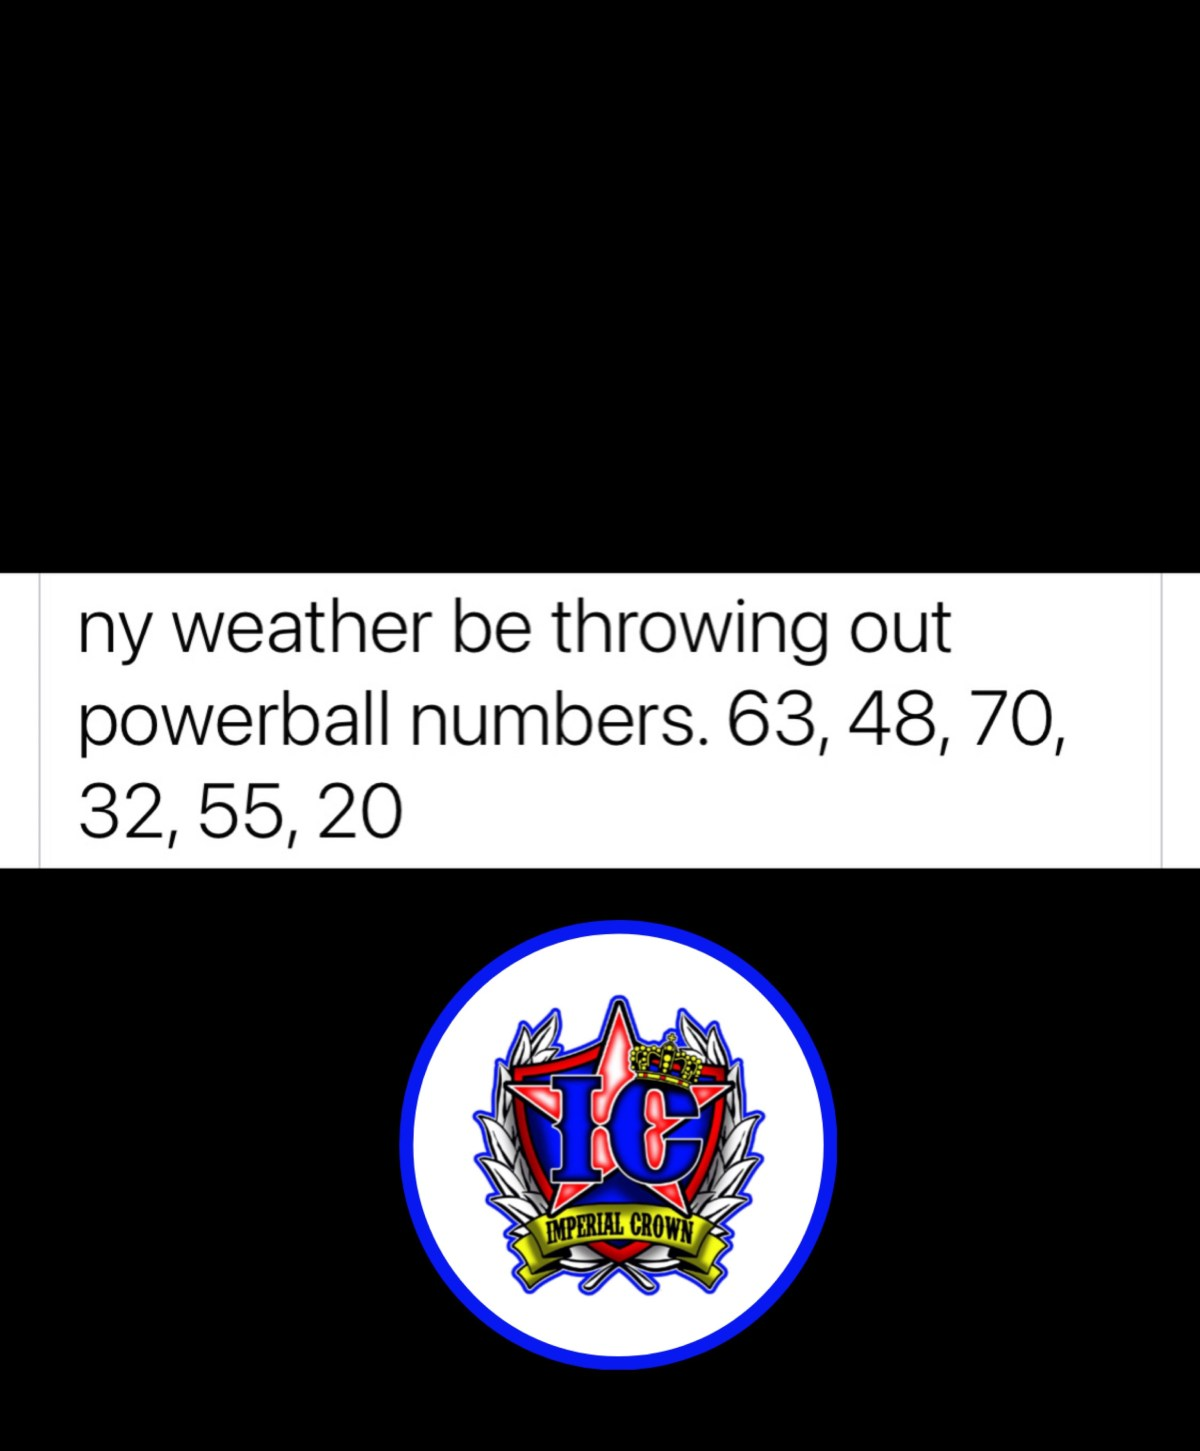 Ny weather be throwing out powerball numbers 63 48 70 32 55 20